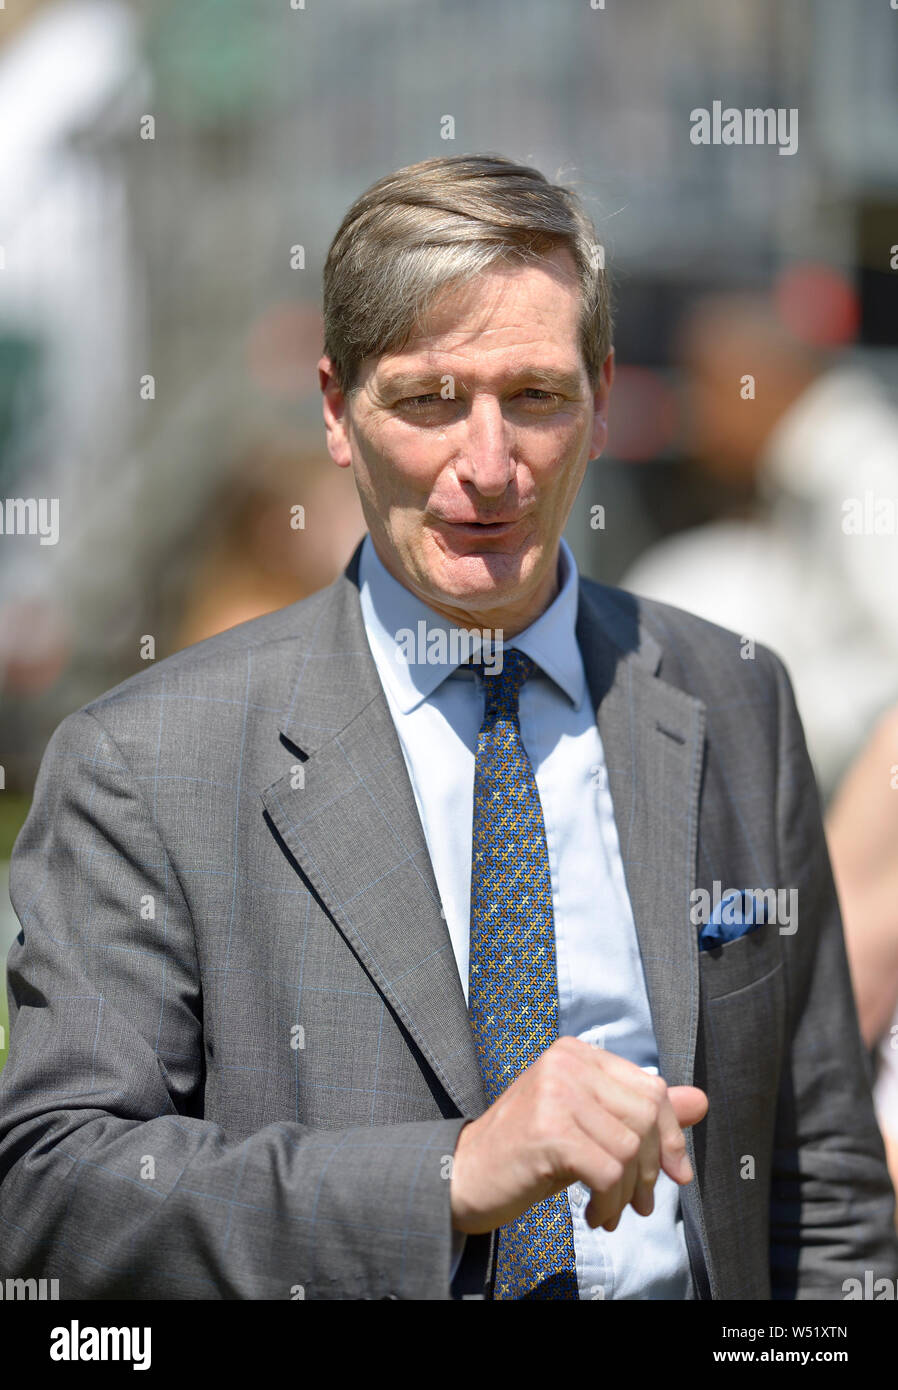 Dominic Grieve MP (Conservative: Beaconsfield) former Attorney General, being interviewed on College Green, Westminster, July 23rd 2019 Stock Photo